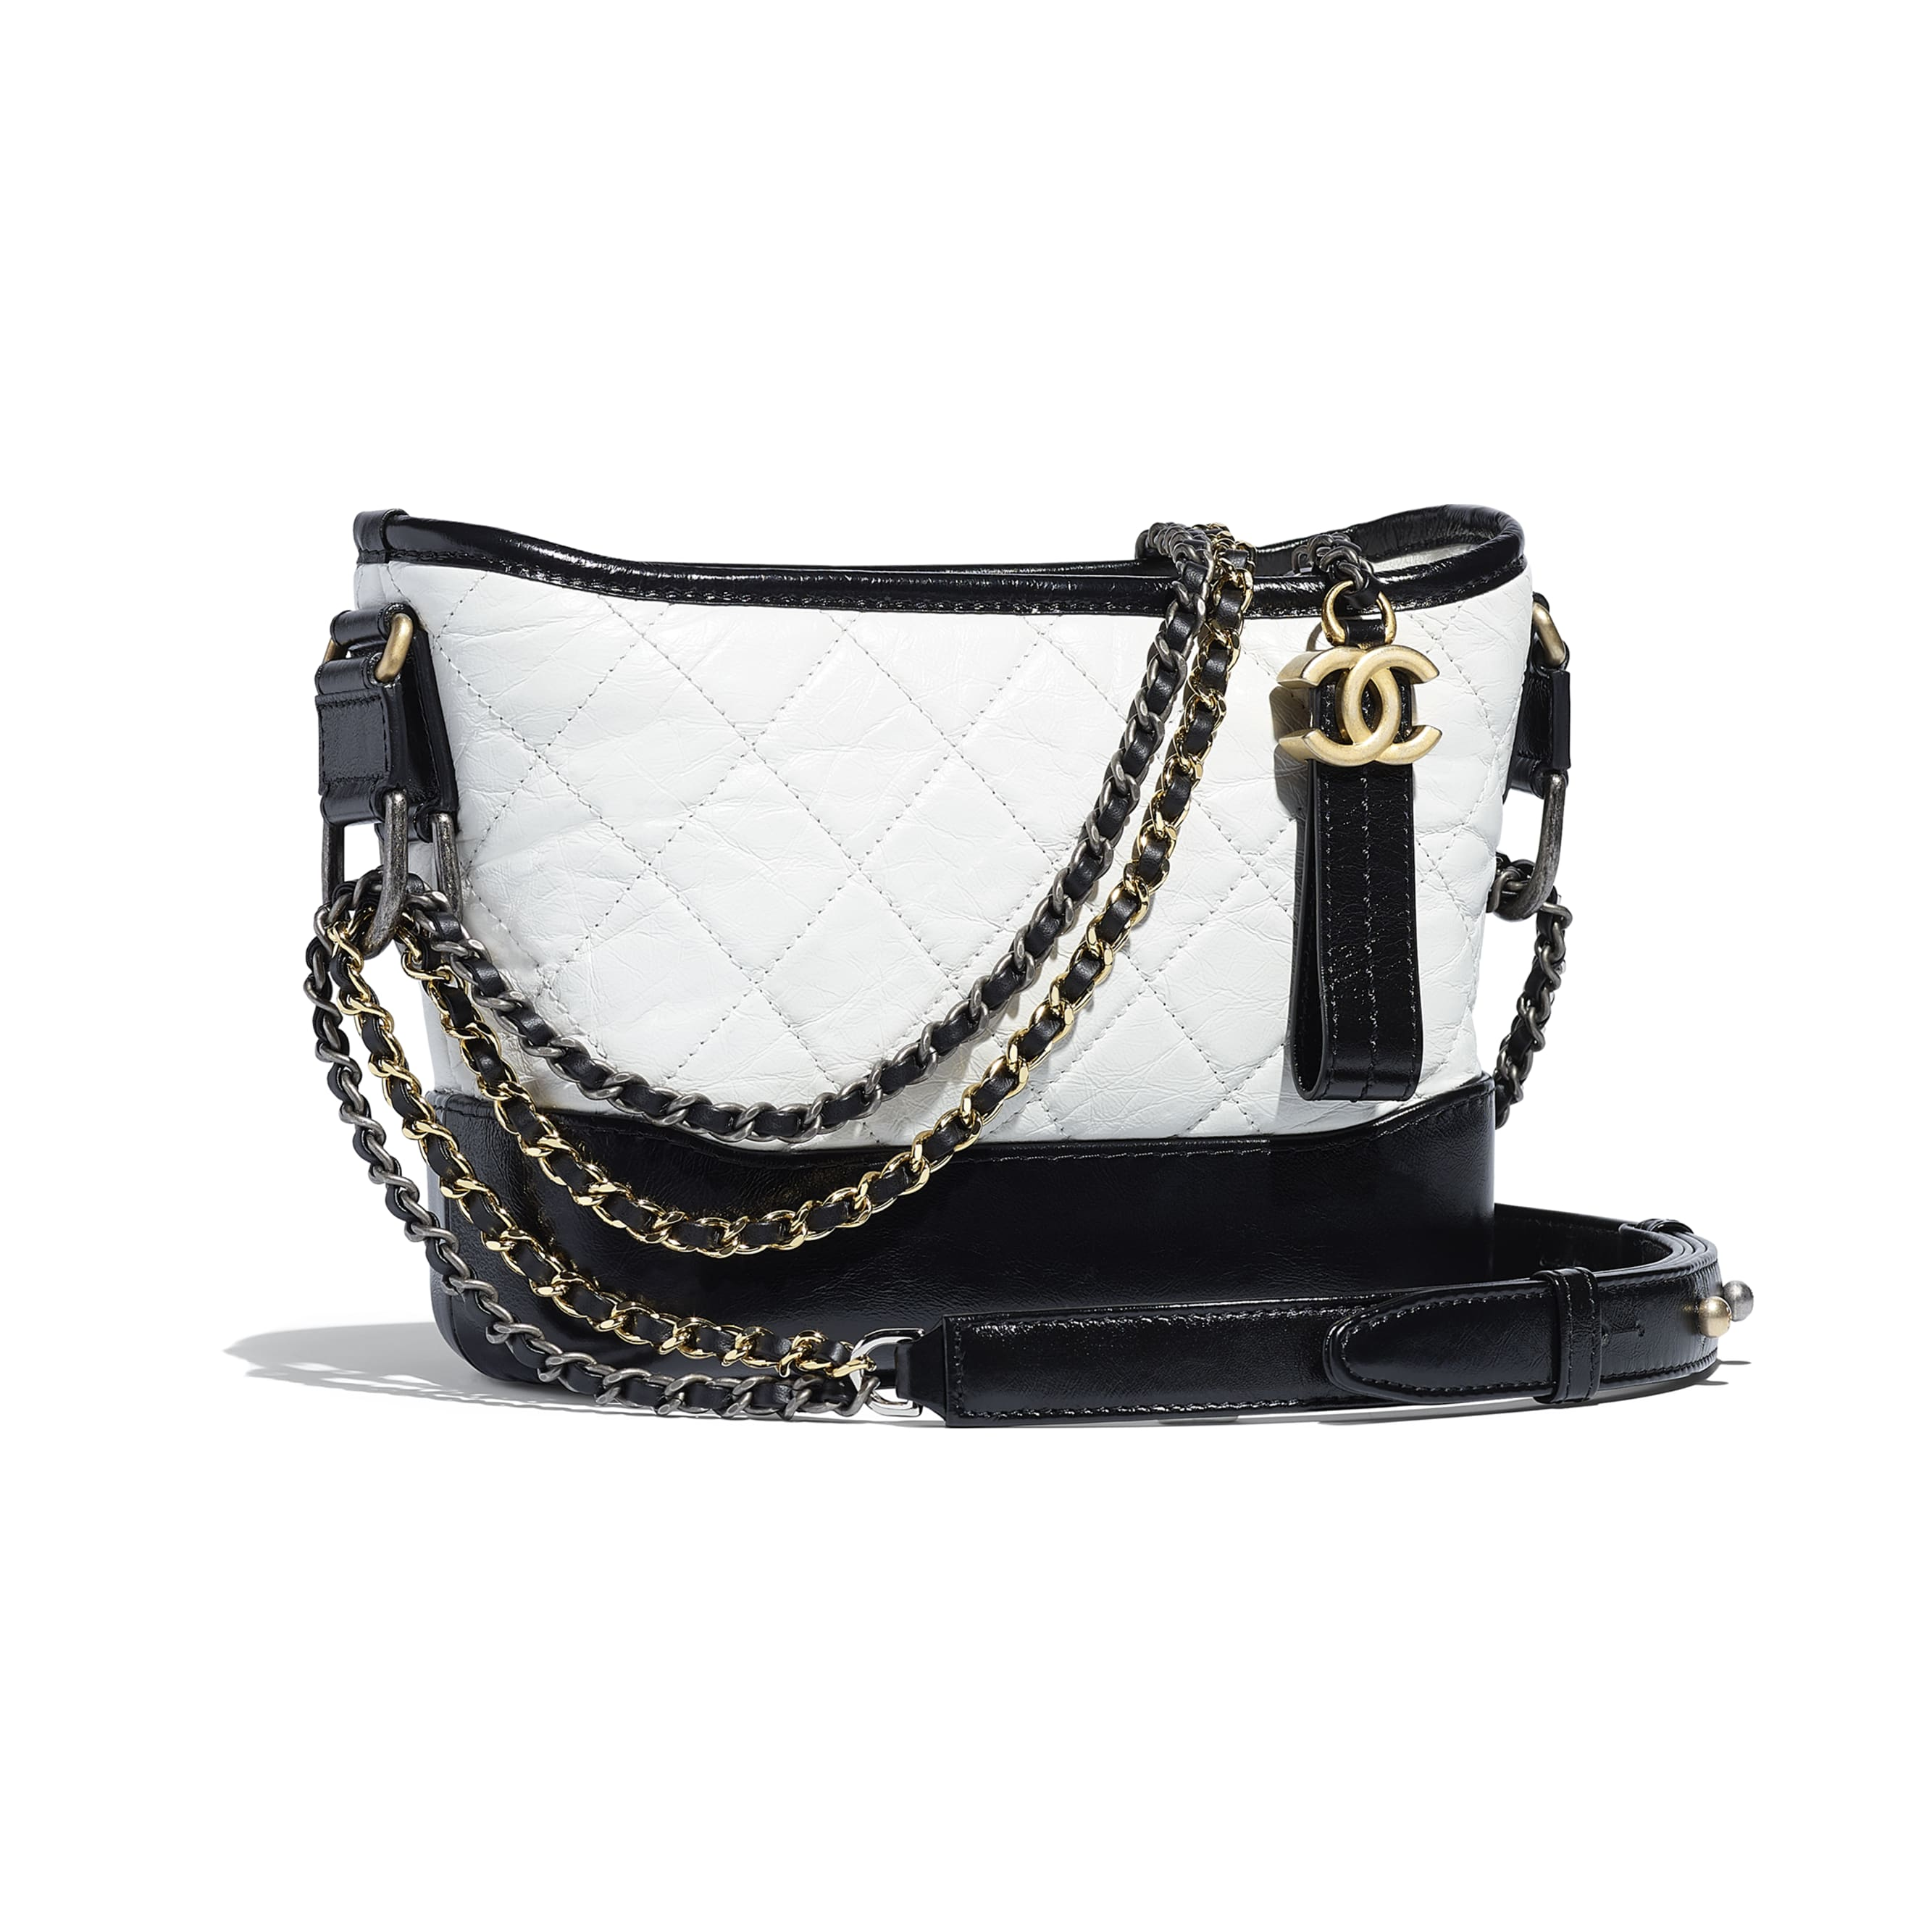 CHANEL'S GABRIELLE Small Hobo Bag - White & Black - Aged Calfskin, Smooth Calfskin, Gold-Tone, Silver-Tone & Ruthenium-Finish Metal - CHANEL - Other view - see standard sized version